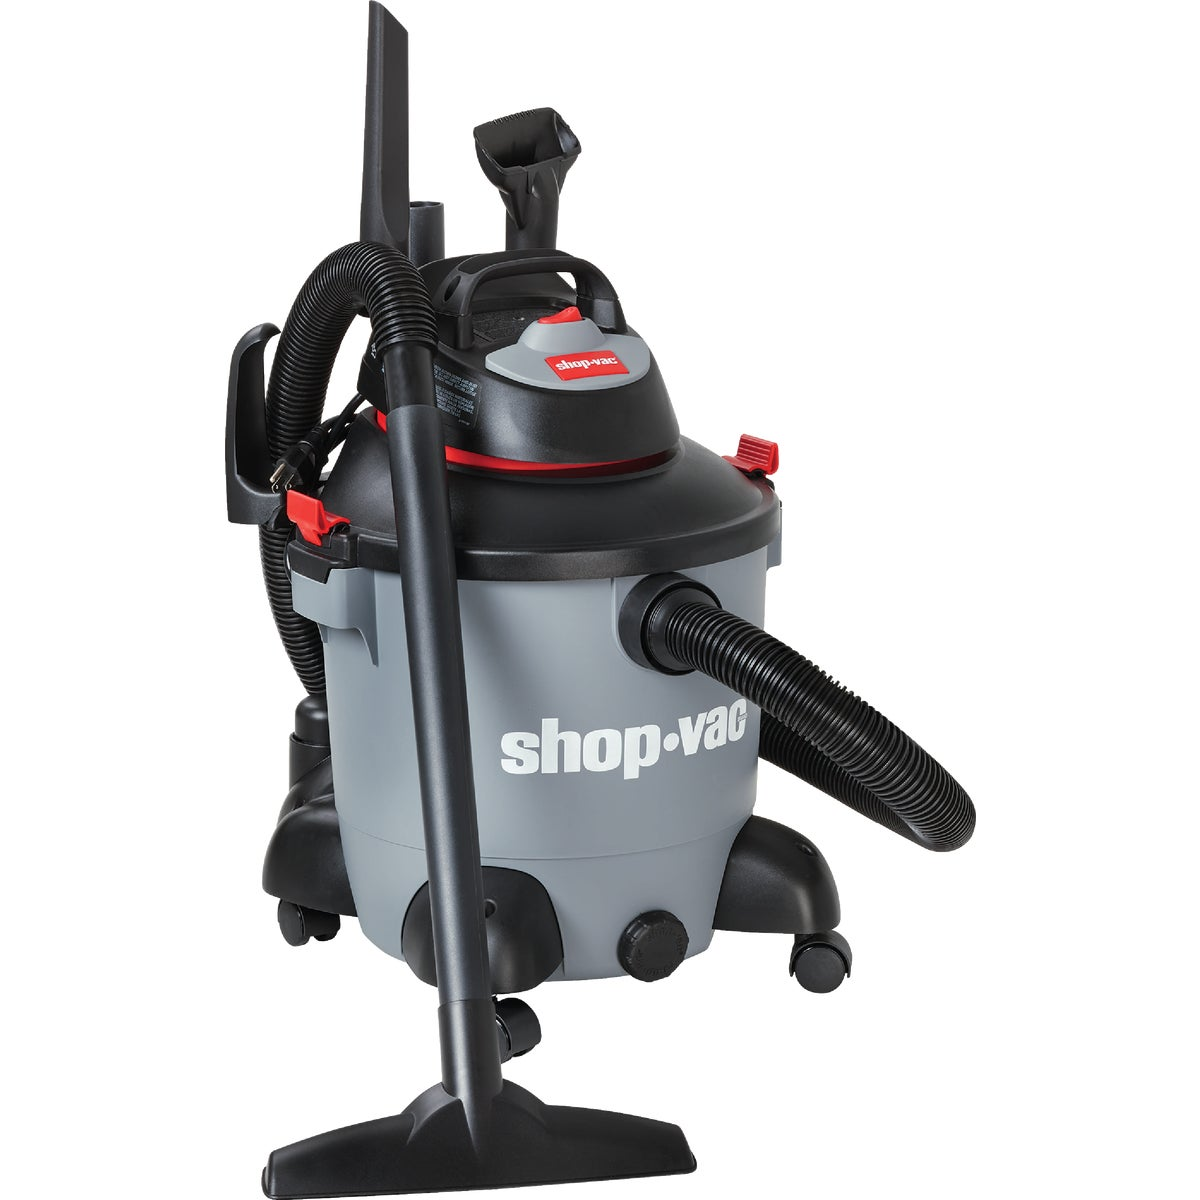 8GAL WET/DRY VAC - 9650800 by Shop Vac Corp